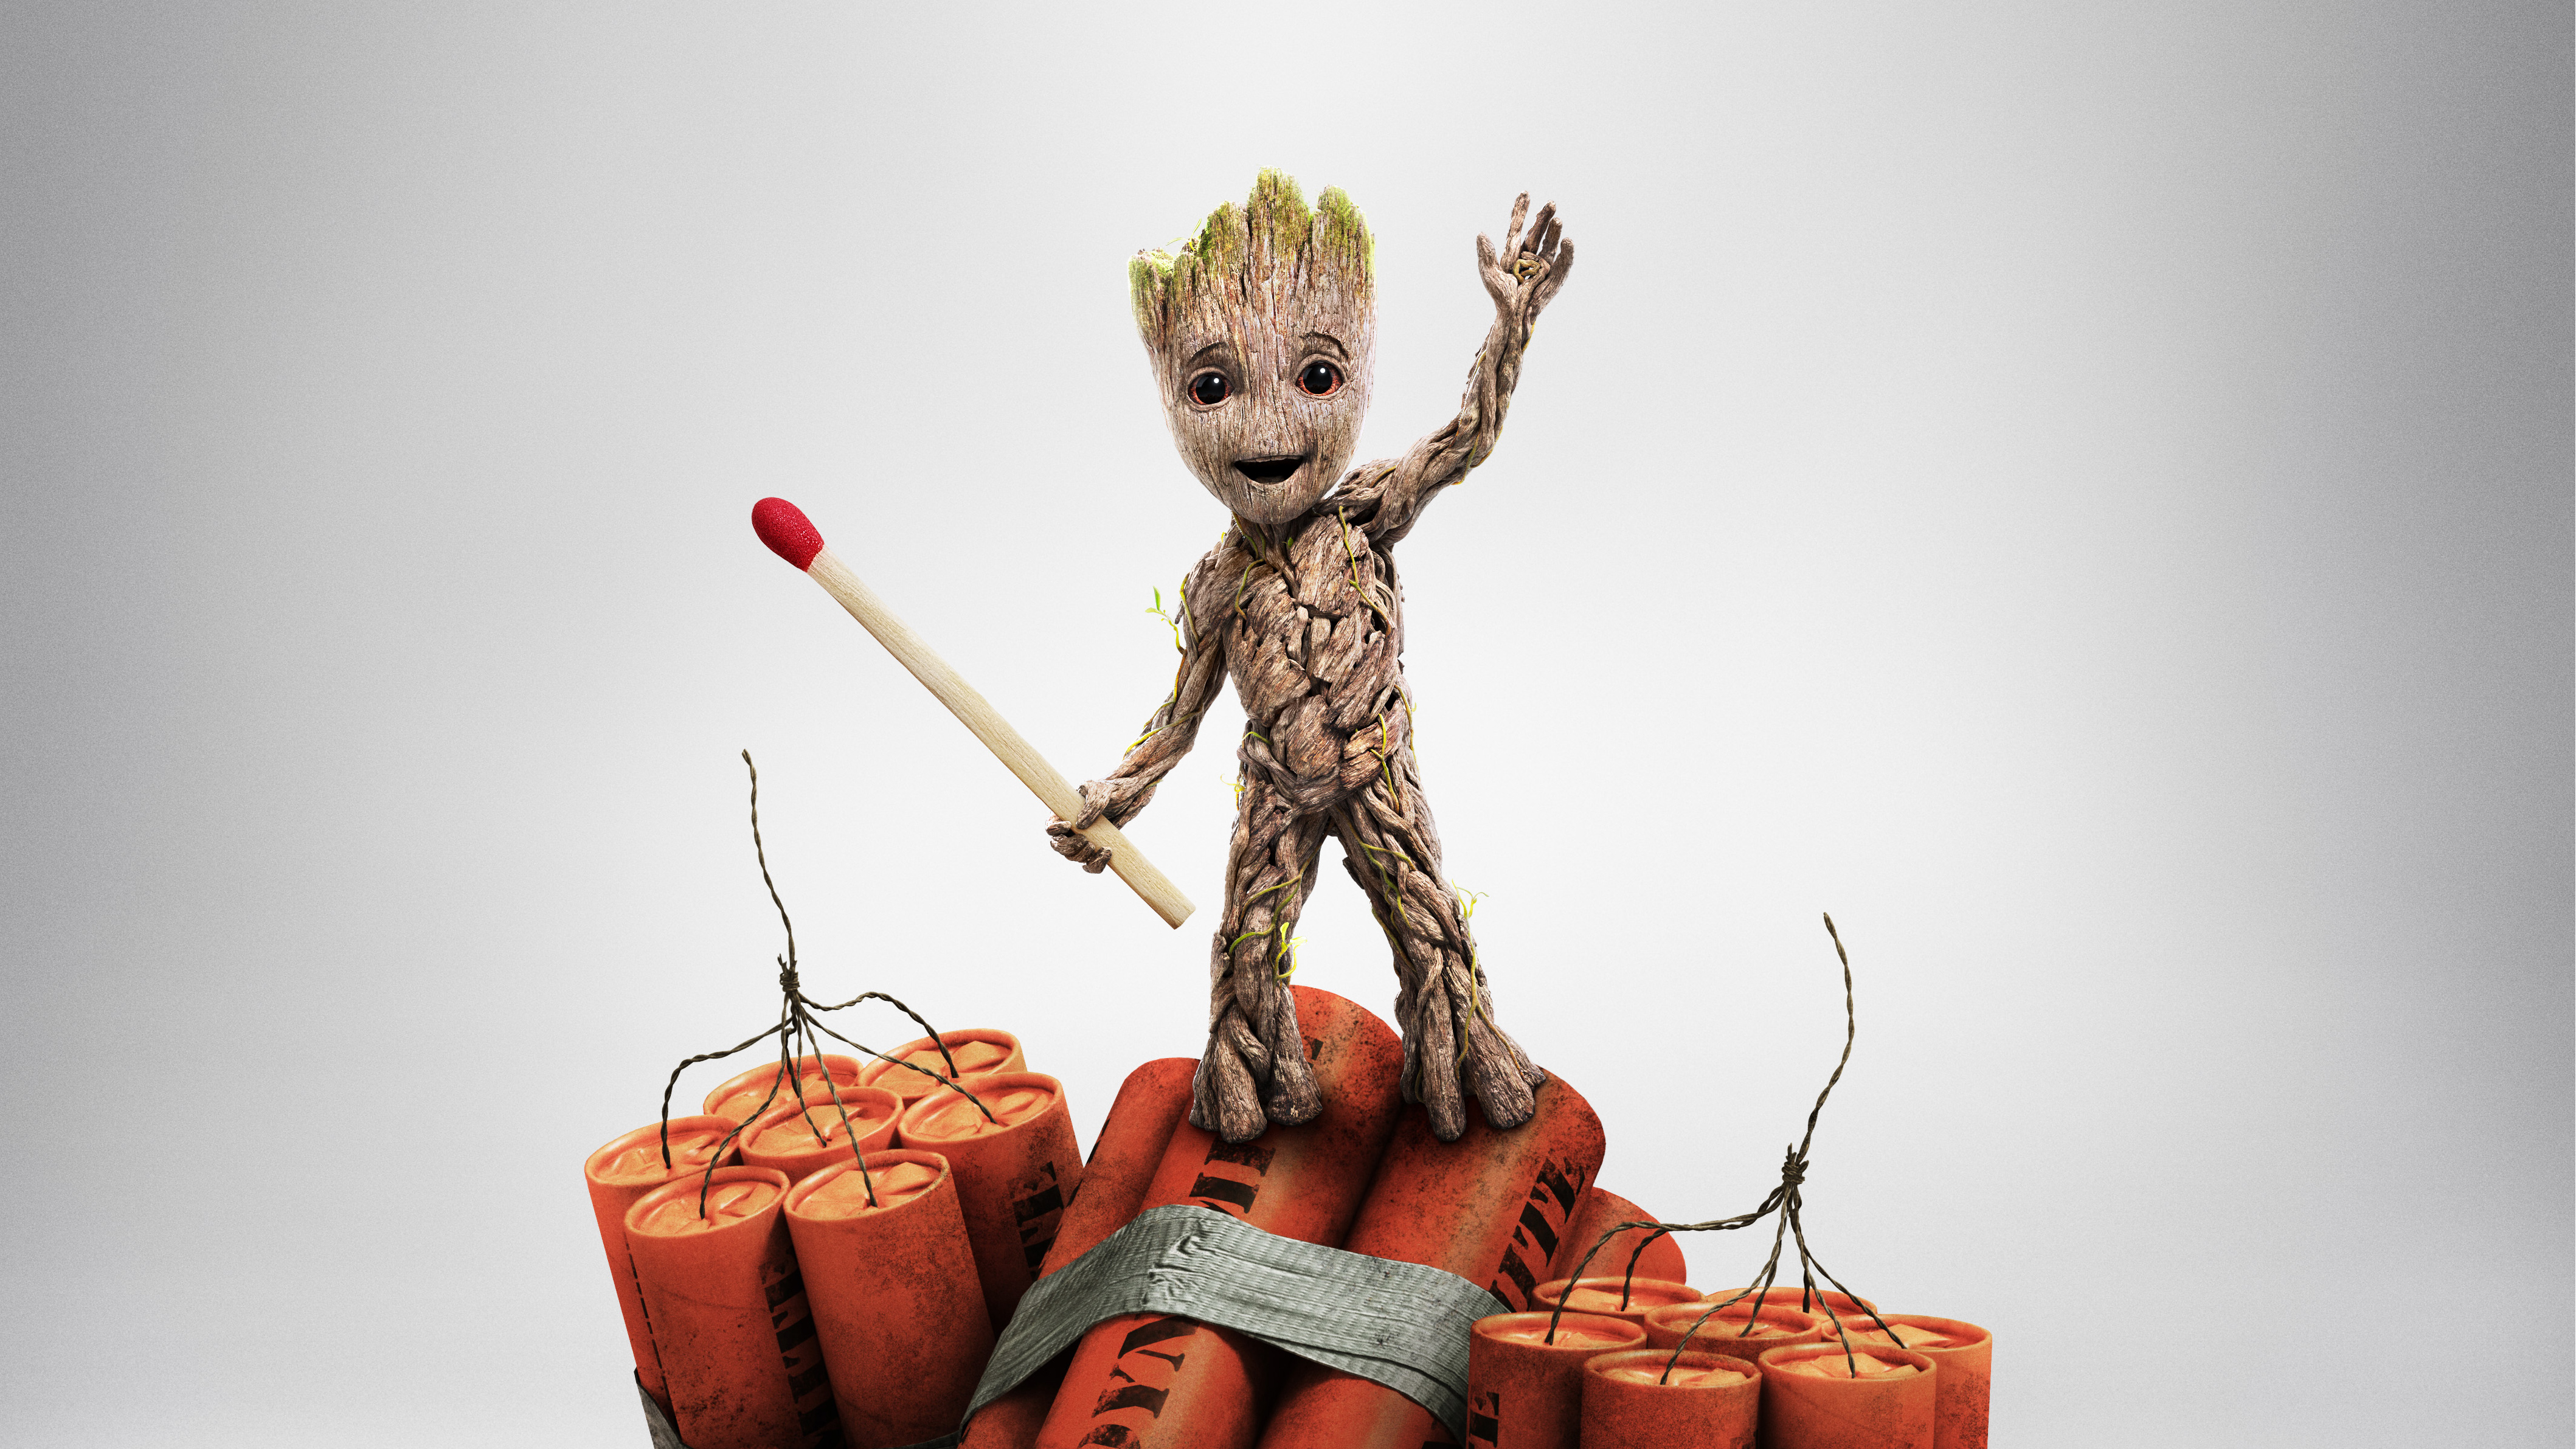 Baby Groot Guardians Of The Galaxy Vol 2 Hd Movies 4k: Baby Groot Guardians Of The Galaxy Vol 2 China Poster 4k